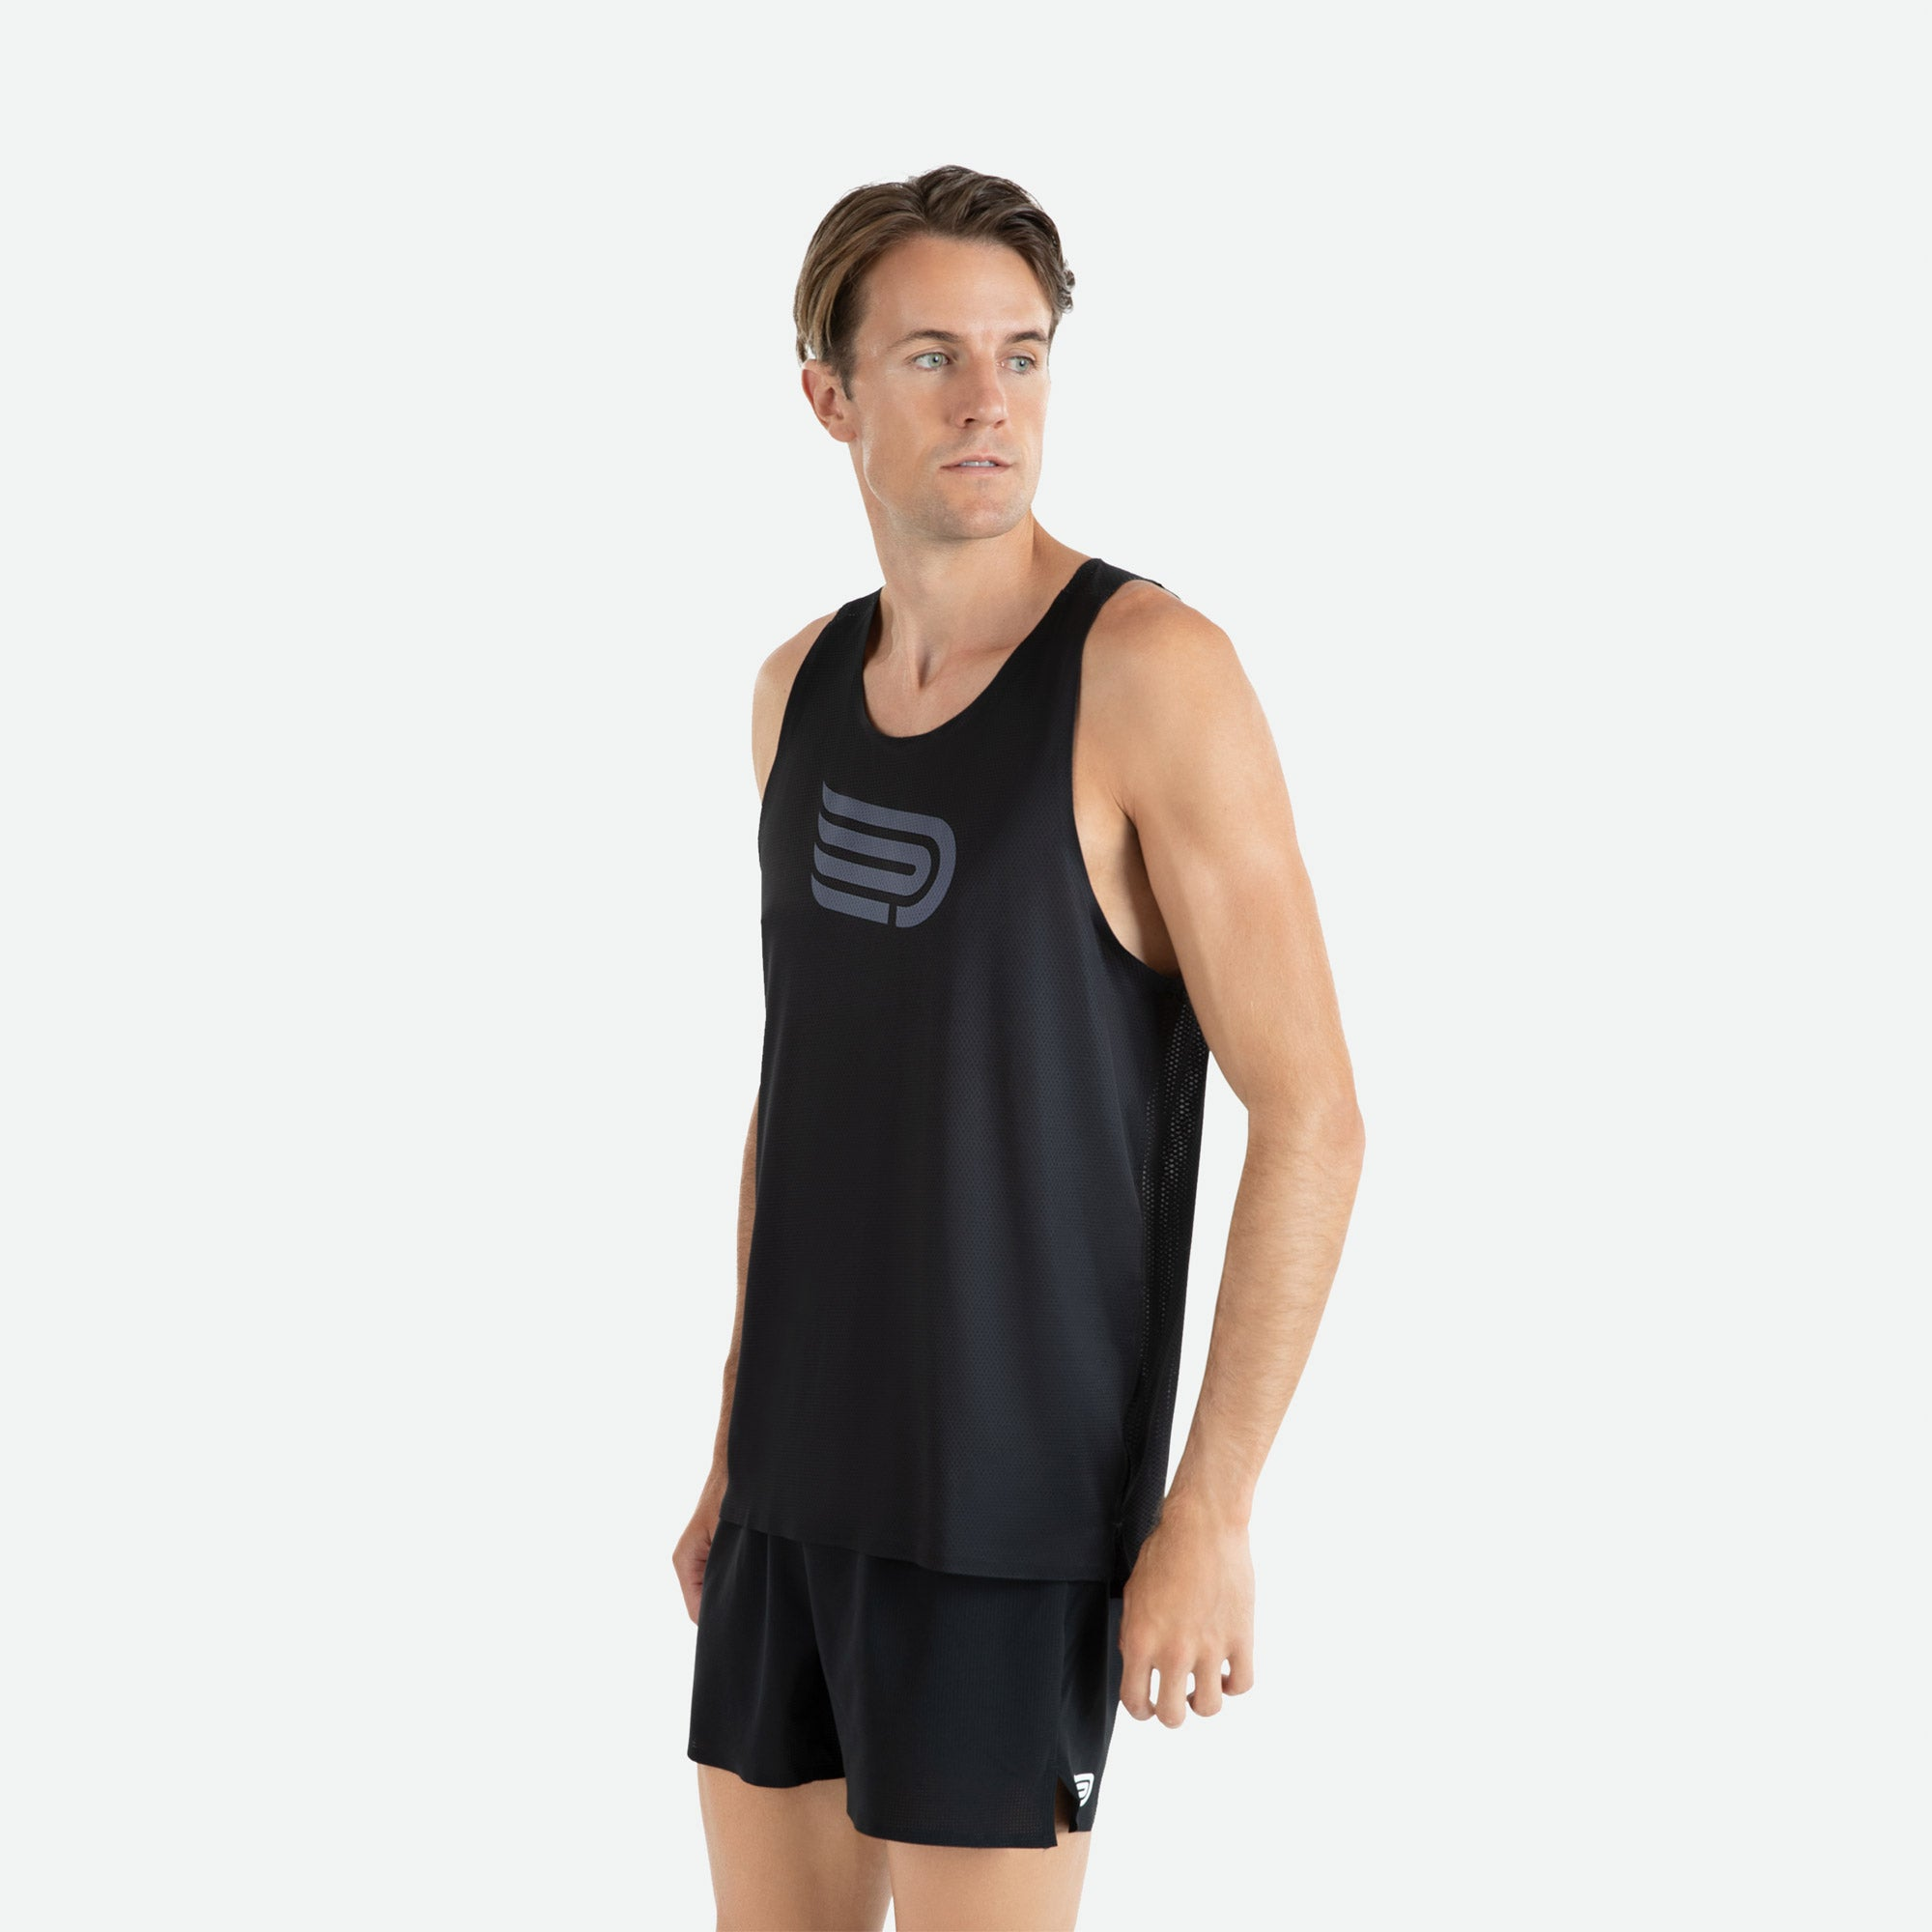 Our Pressio men's Ārahi black/dark grey singlet features EcoTECH MF fabric which has dual filament recycled polyester yarns from Unifi for superior moisture control to keep you dry.